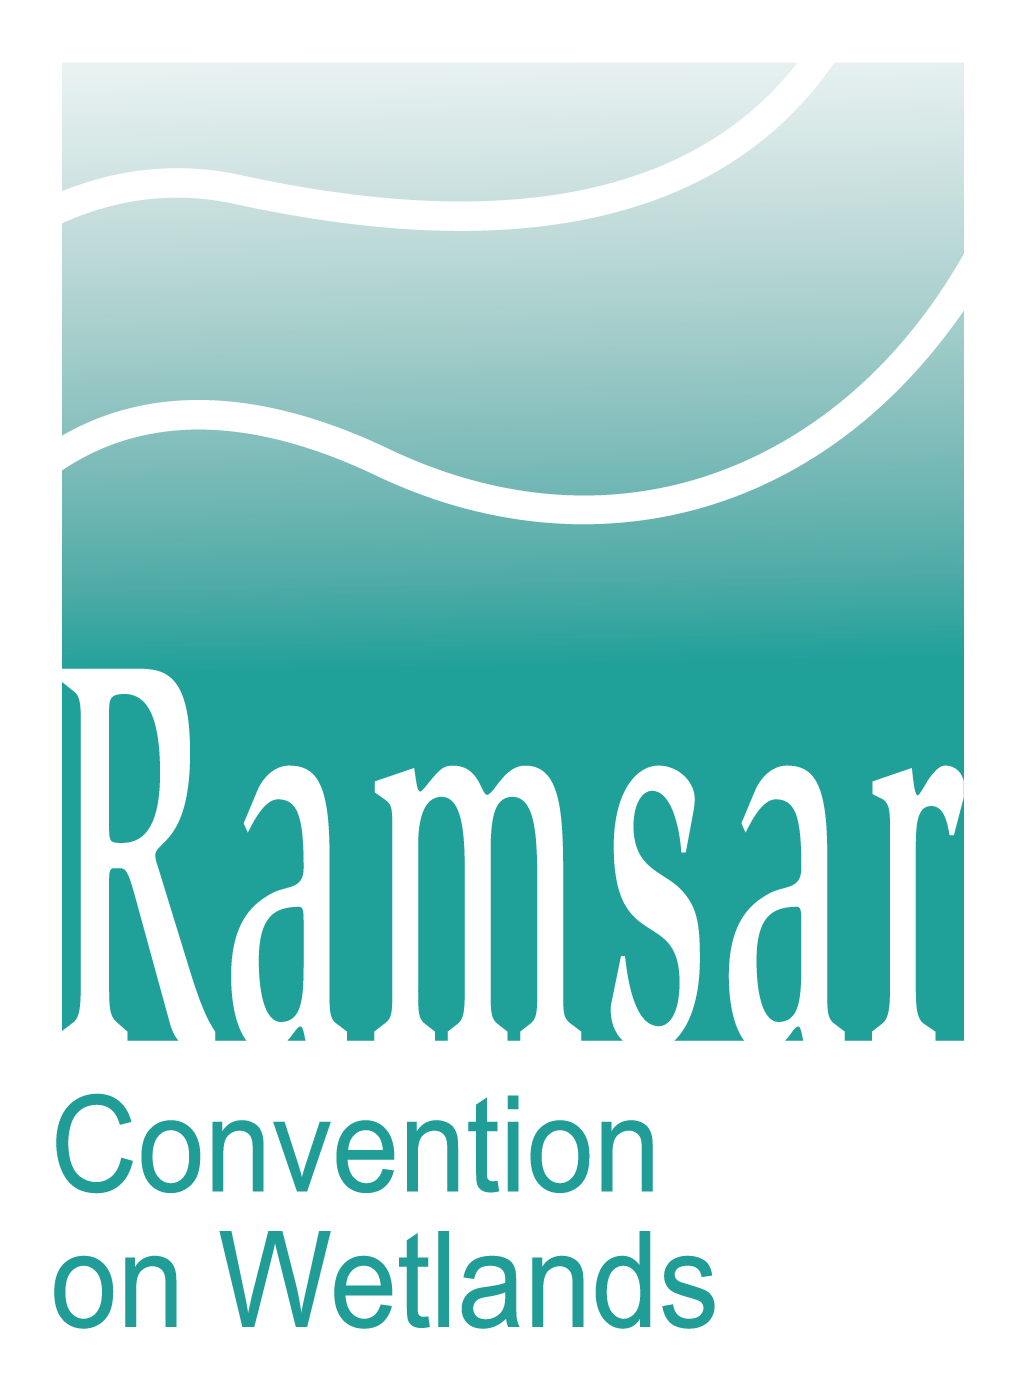 RAMSAR Convention on Wetlands